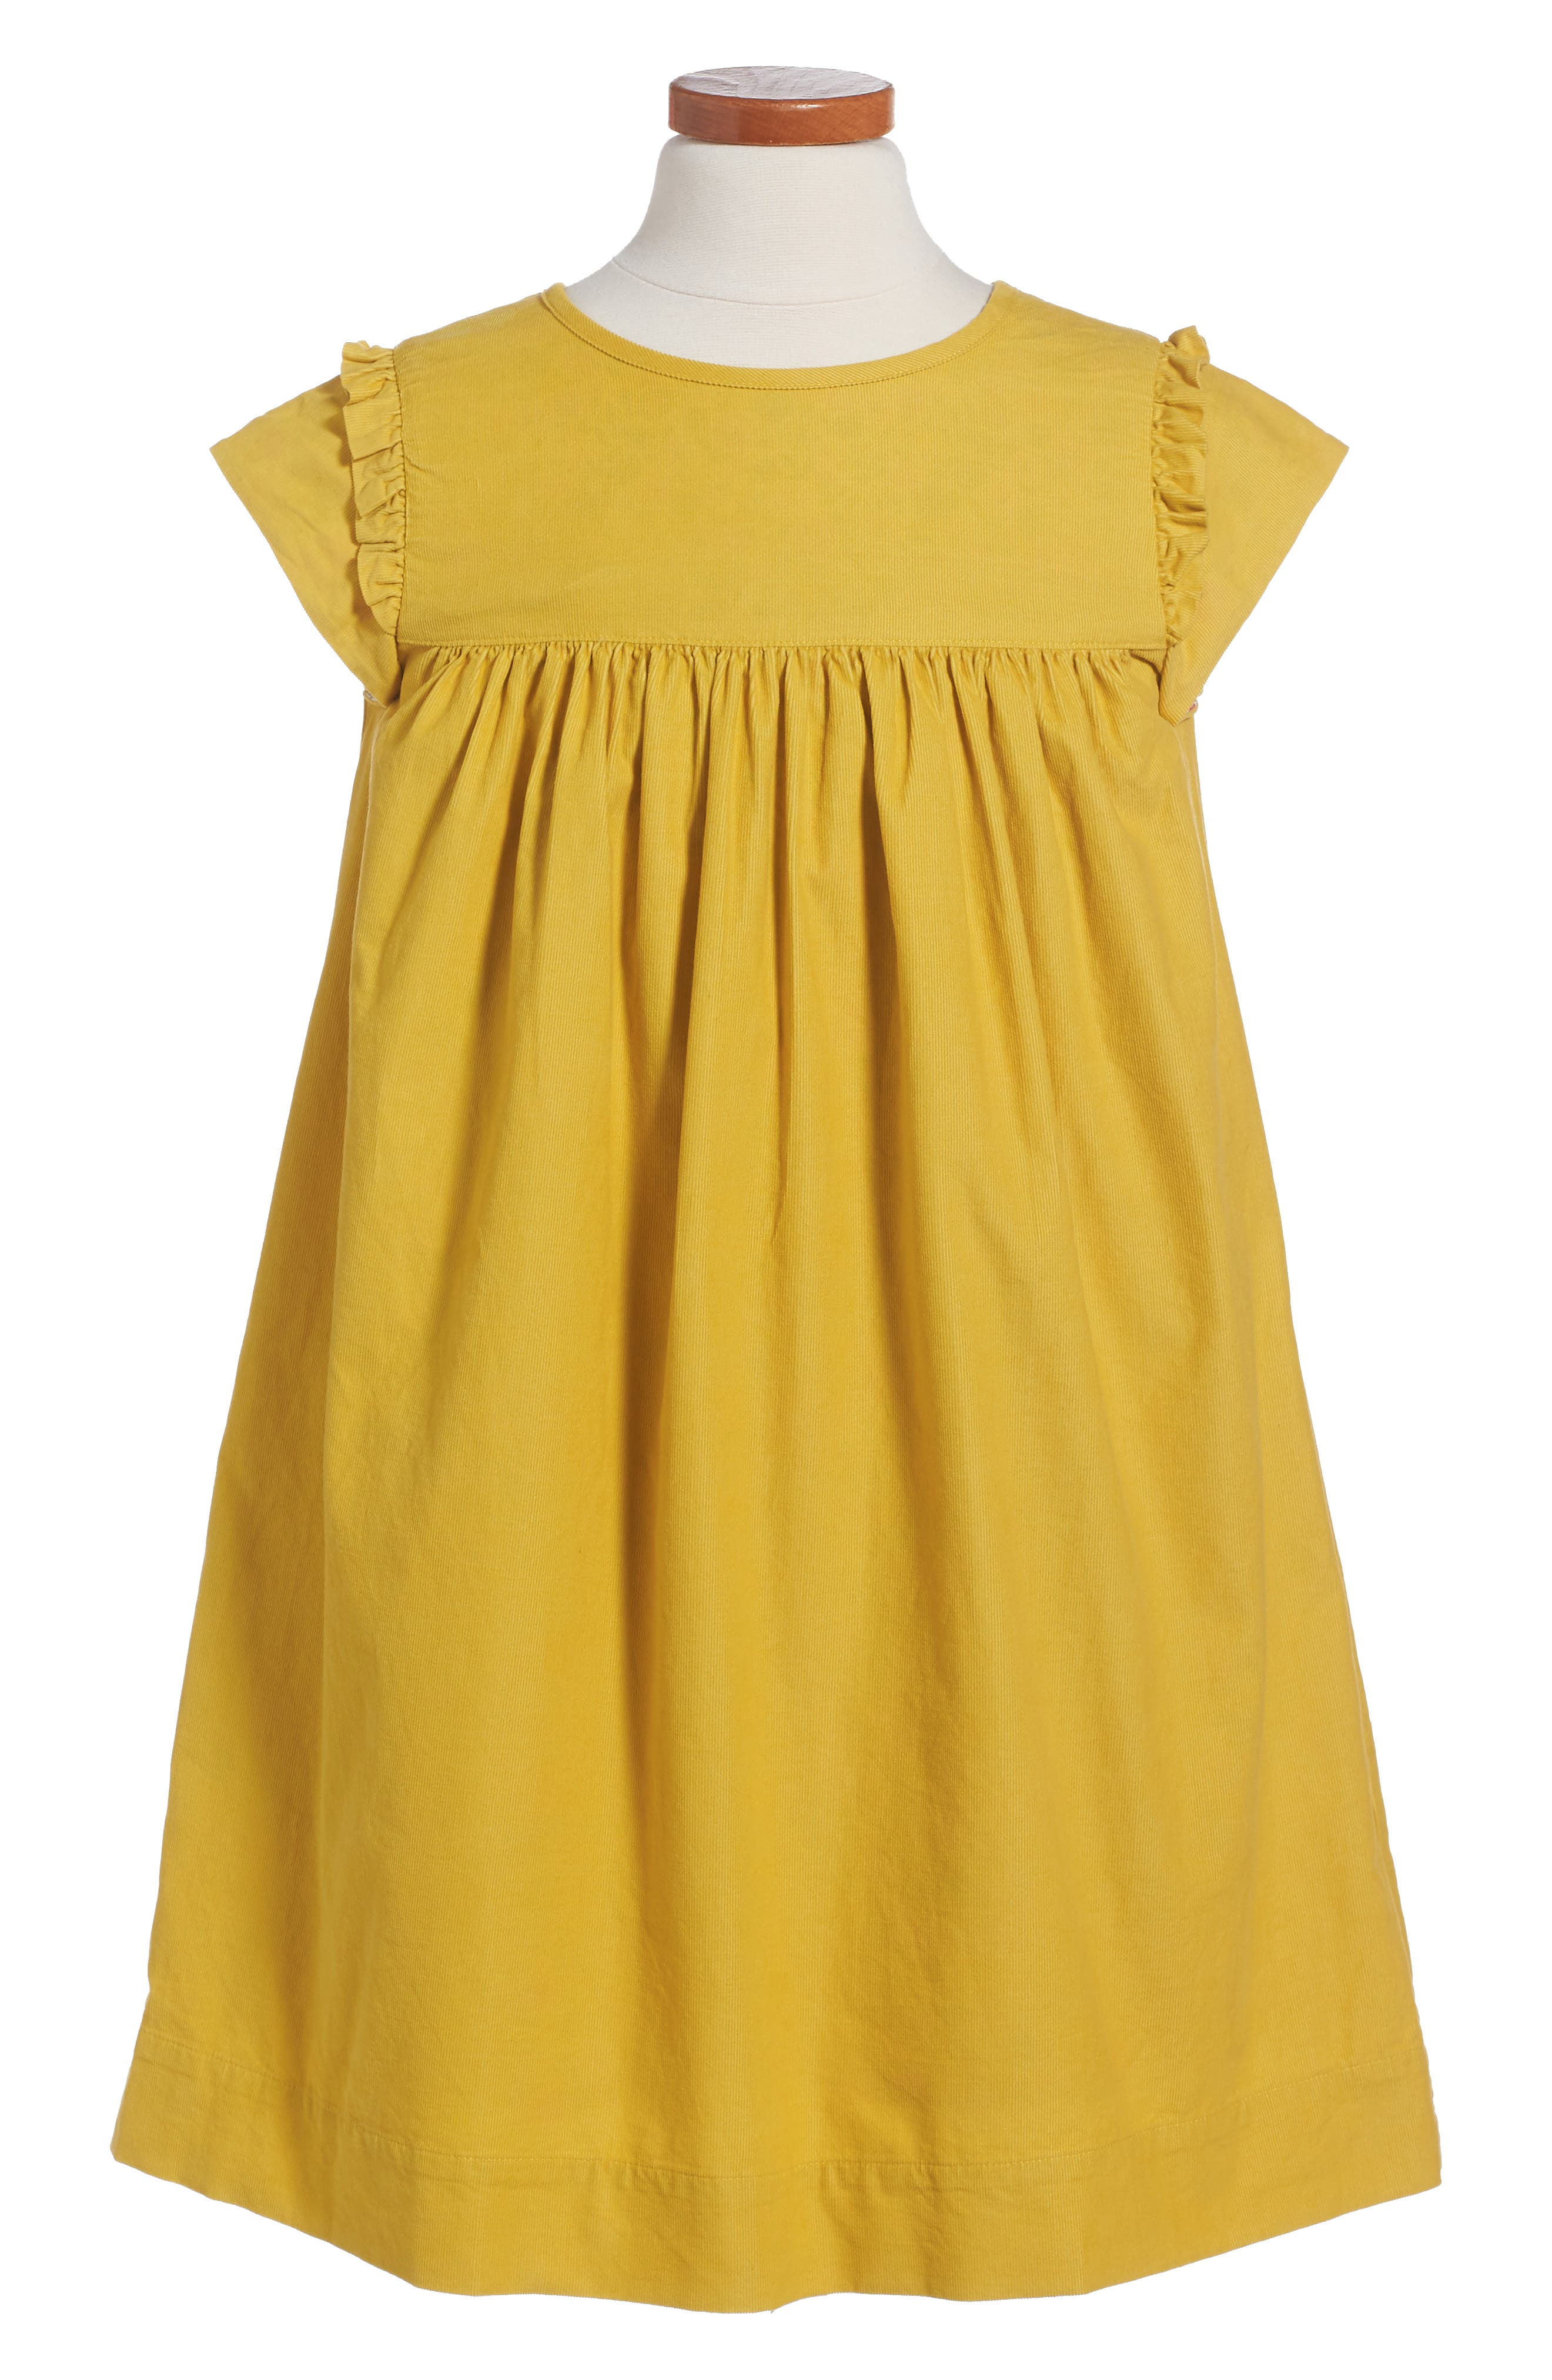 Mini Boden Pretty Corduroy Dress (Toddler Girls, Little Girls & Big Girls)